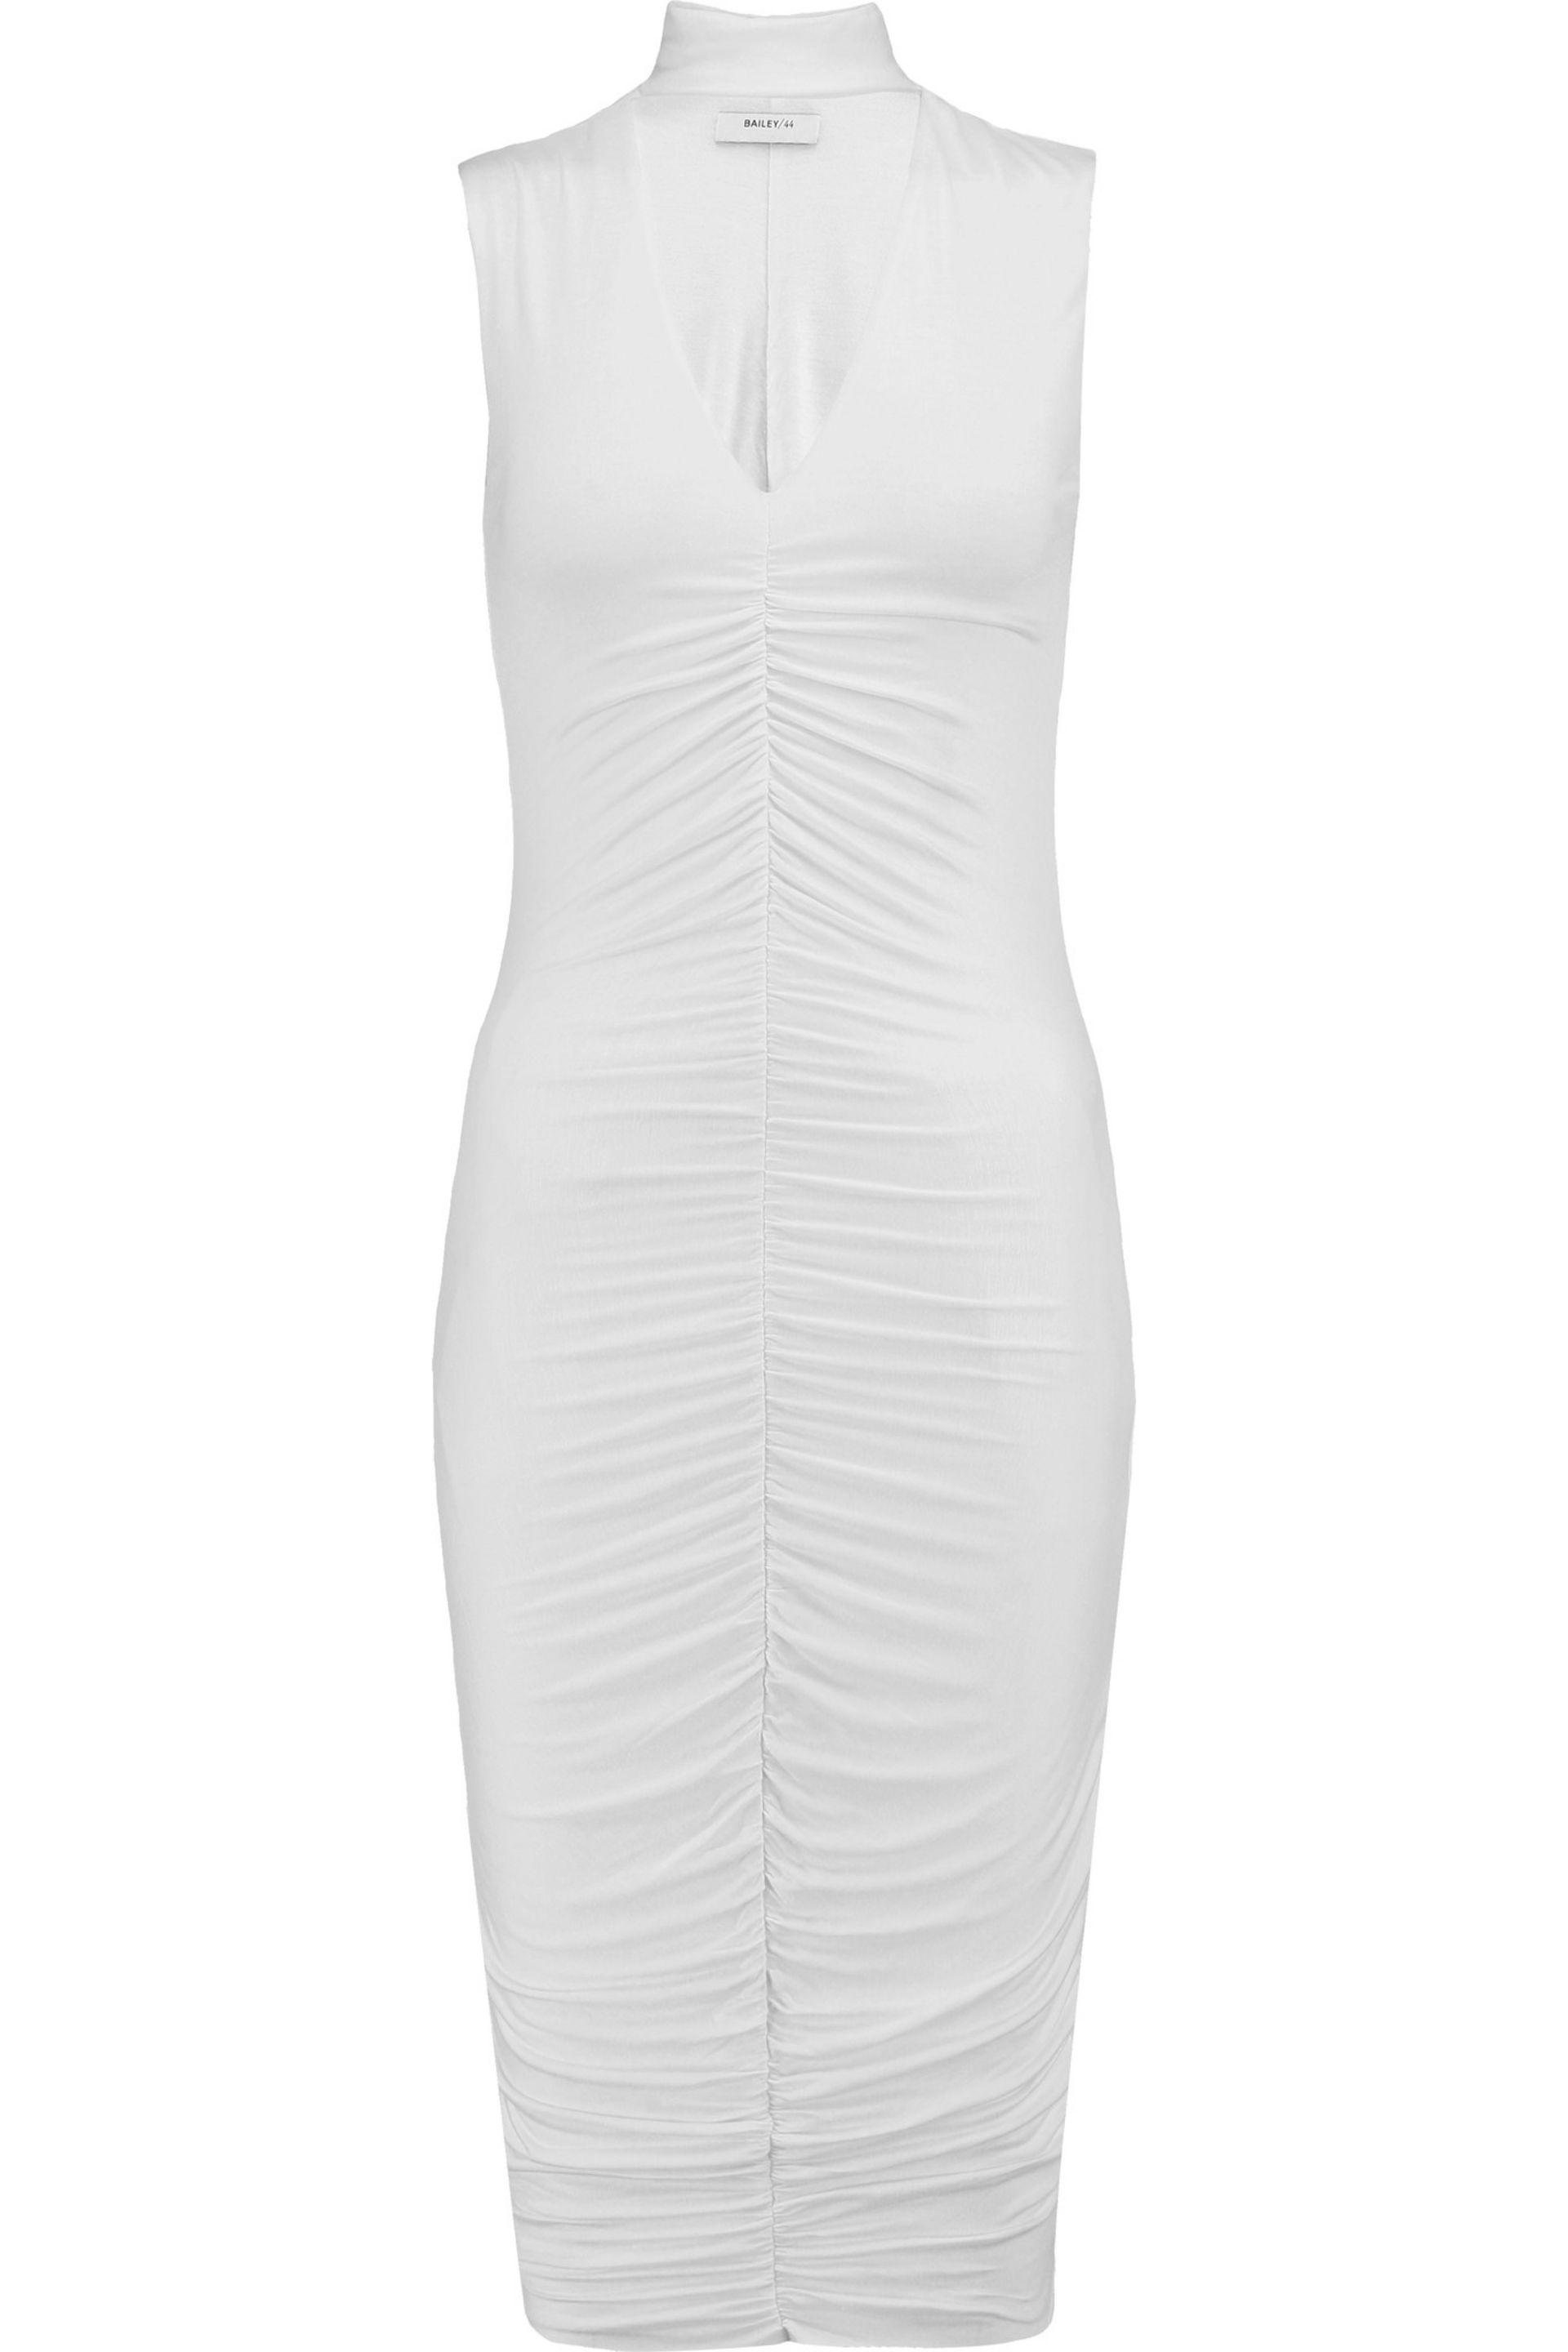 Bailey 44. Women's White Cutout Ruched Stretch-jersey Dress